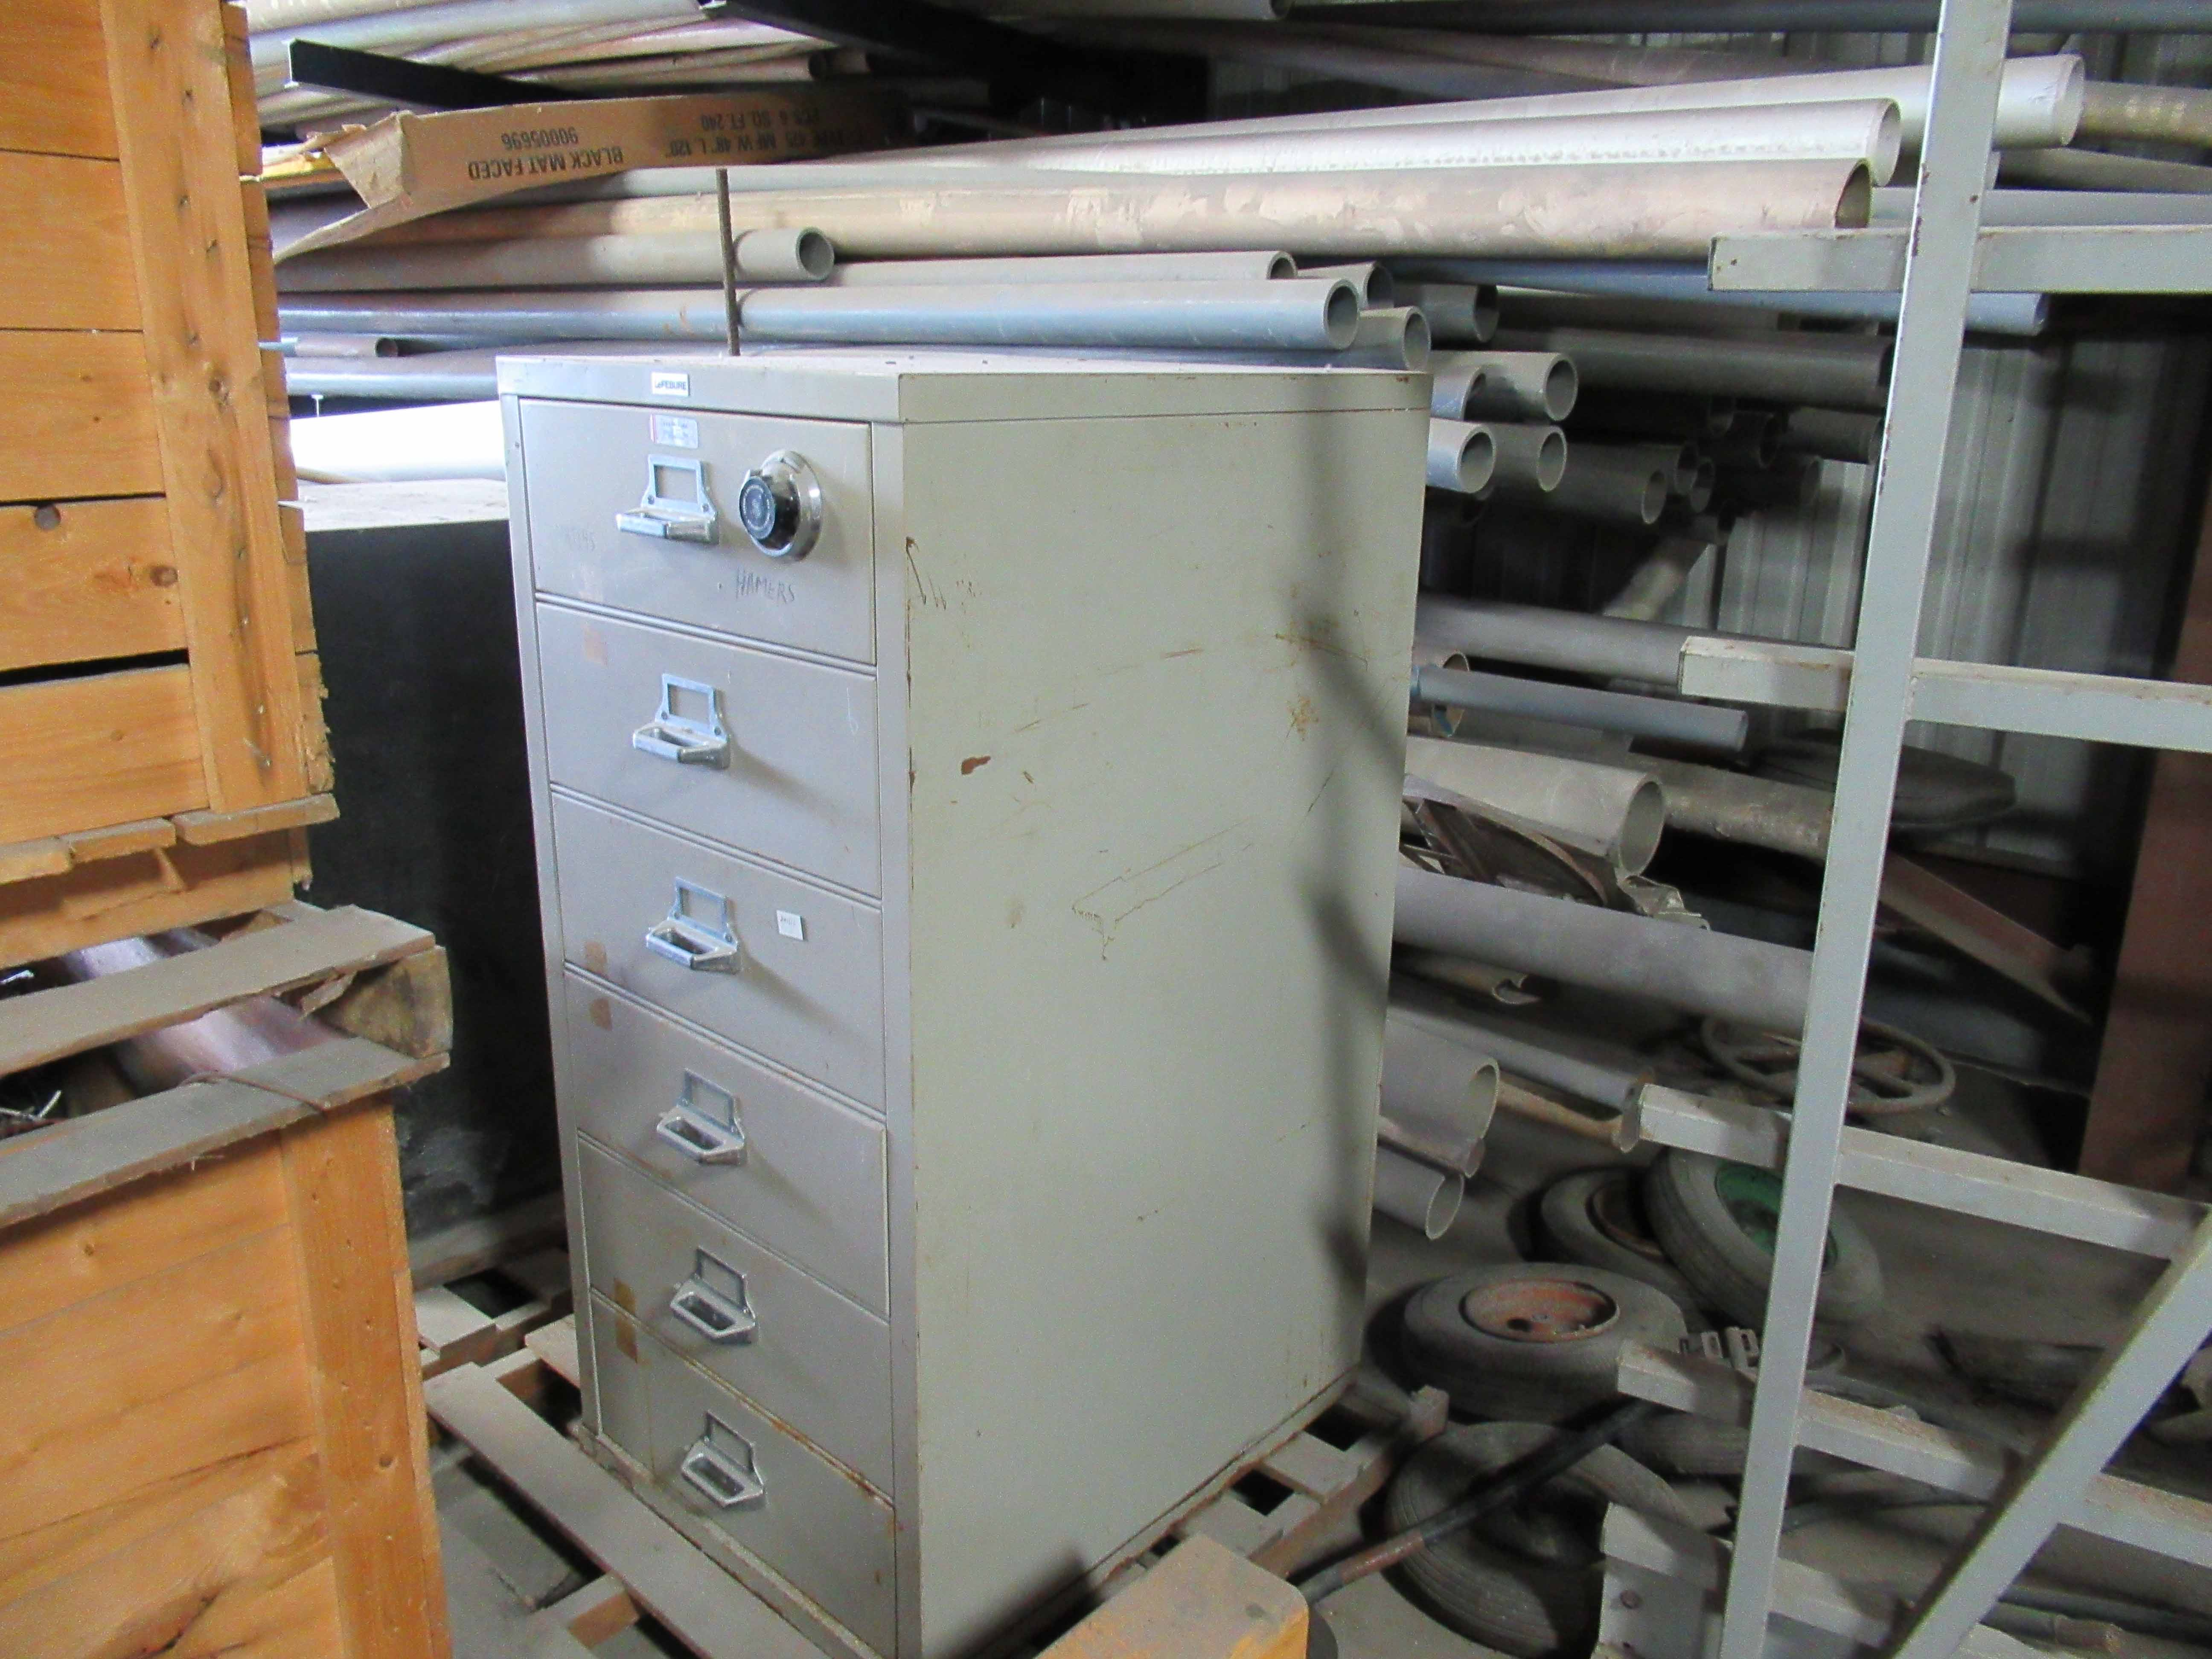 Lot 10 - LEFEBURE 6-DRAWER COMBINATION LOCK TOOL CABINET, heavy duty locking cabinet with Sargent & Greenleaf